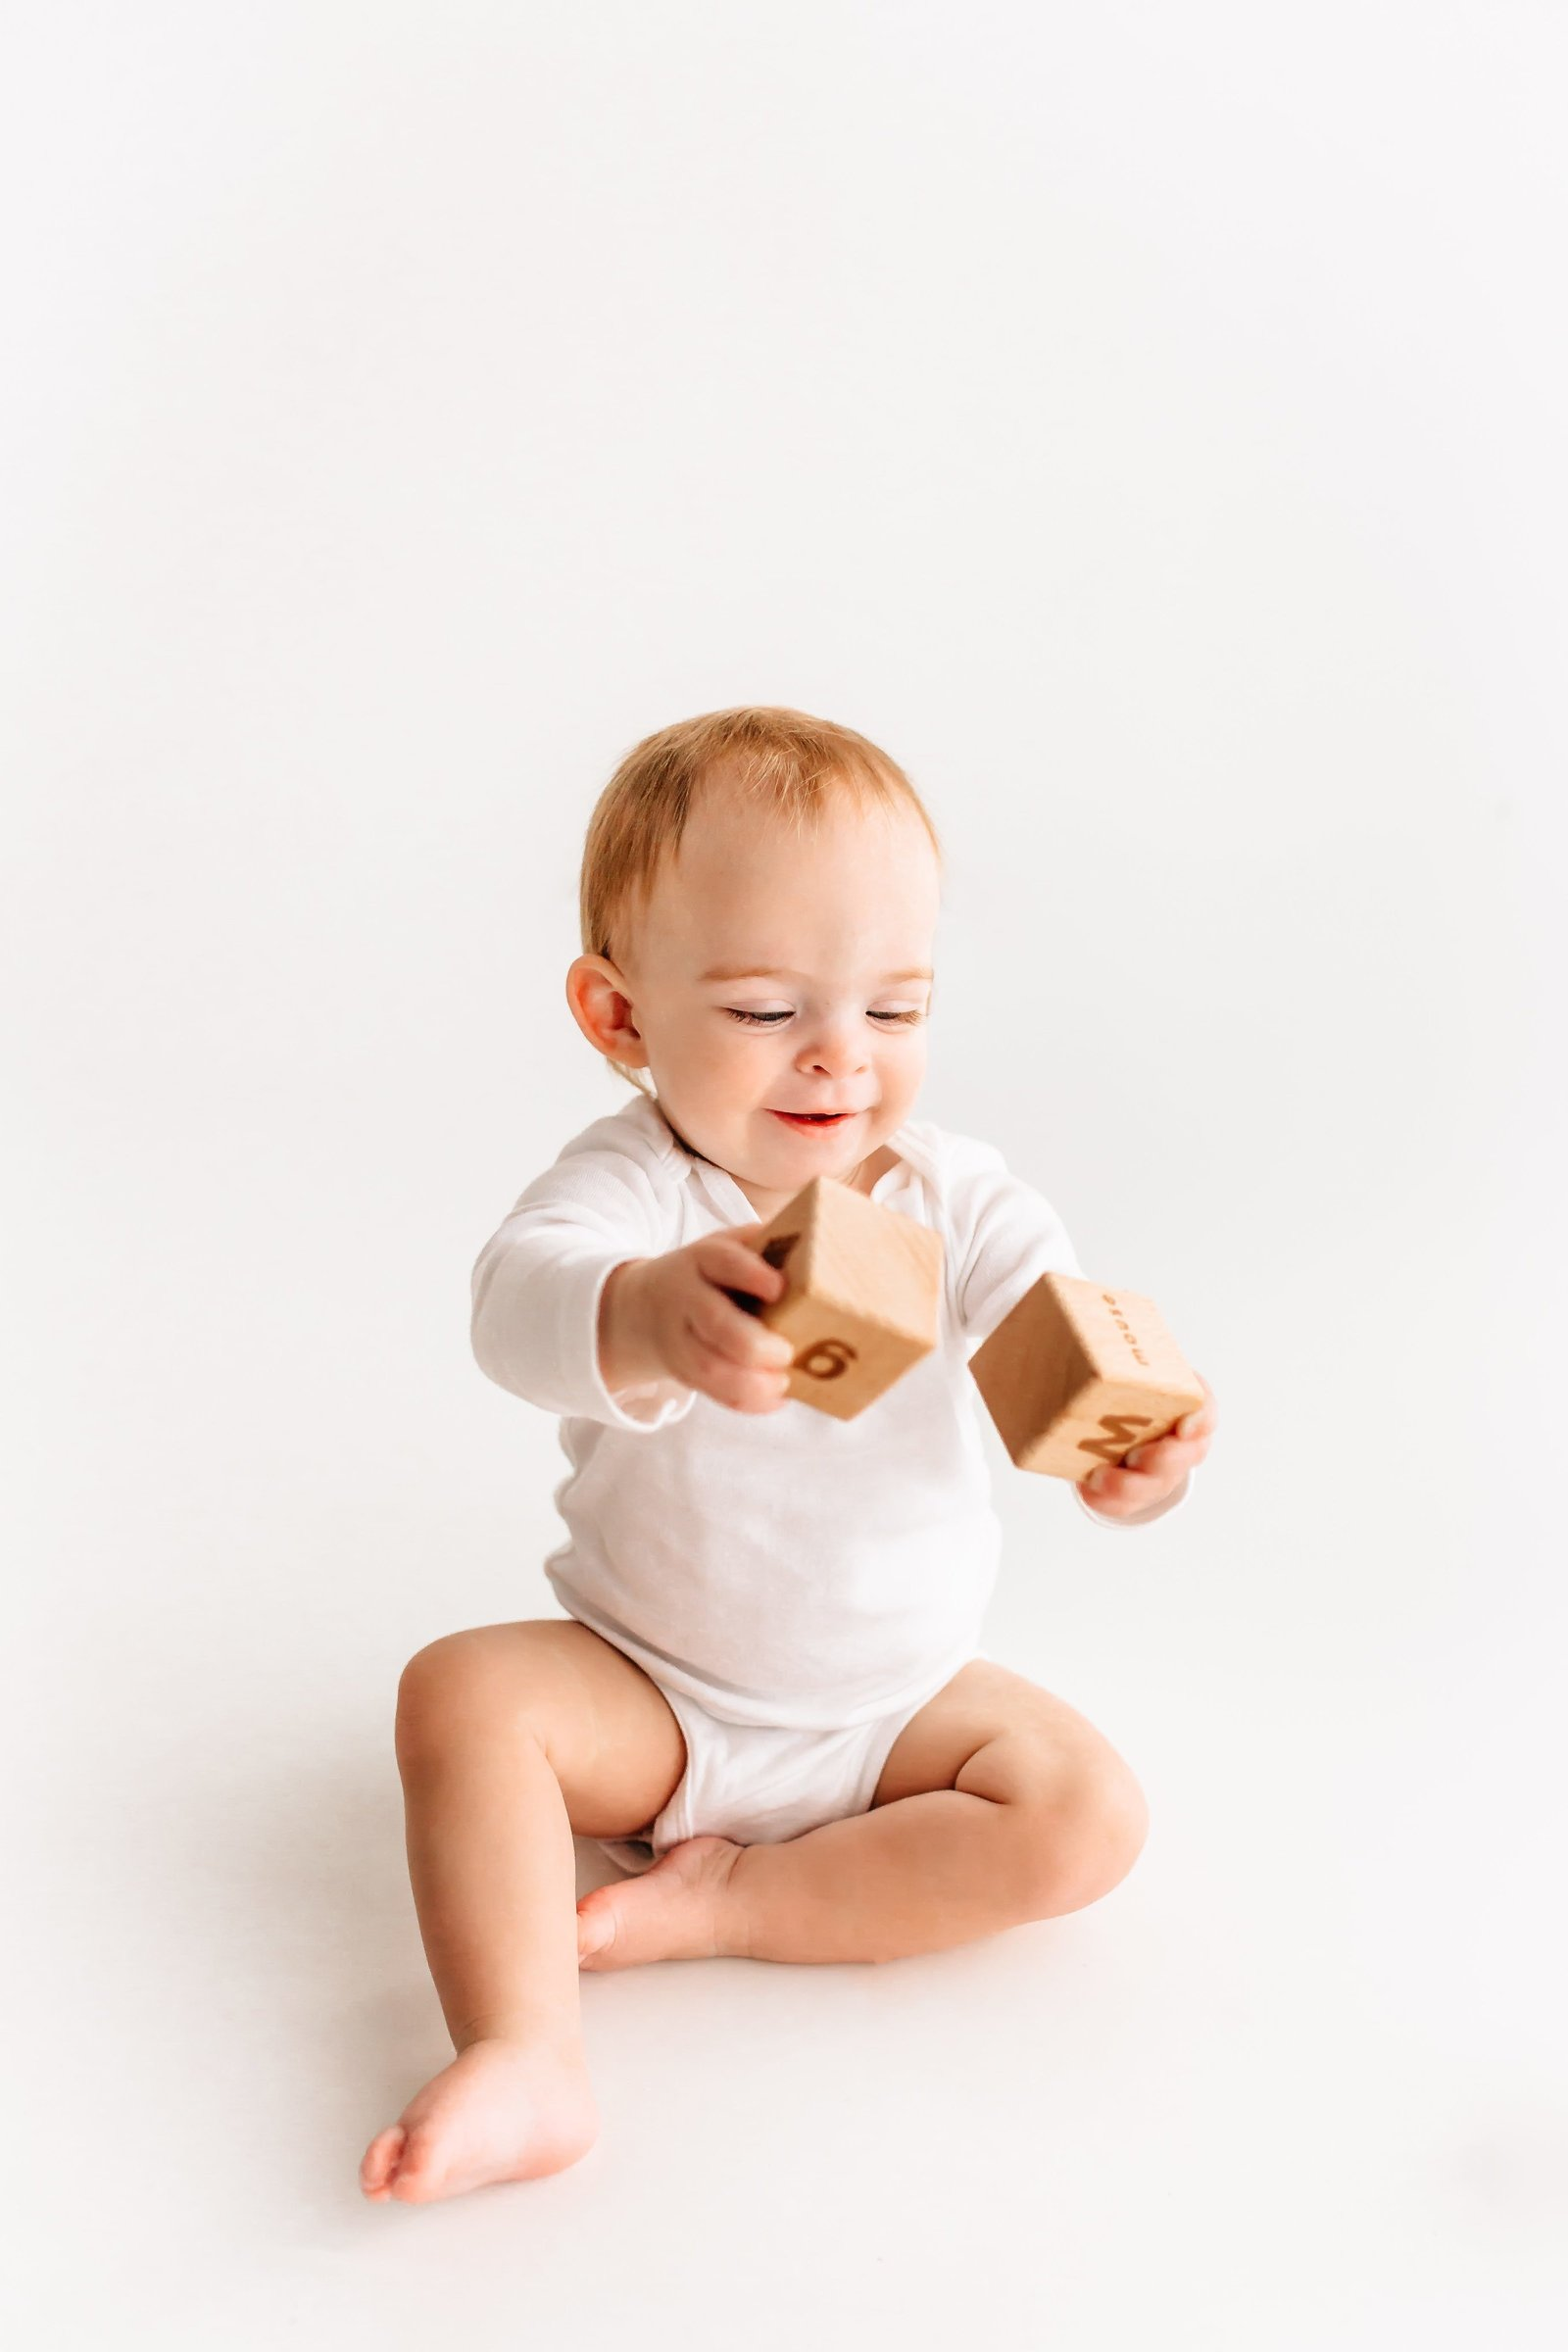 St_Louis_Baby_Photographer_Kelly_Laramore_Photography_66